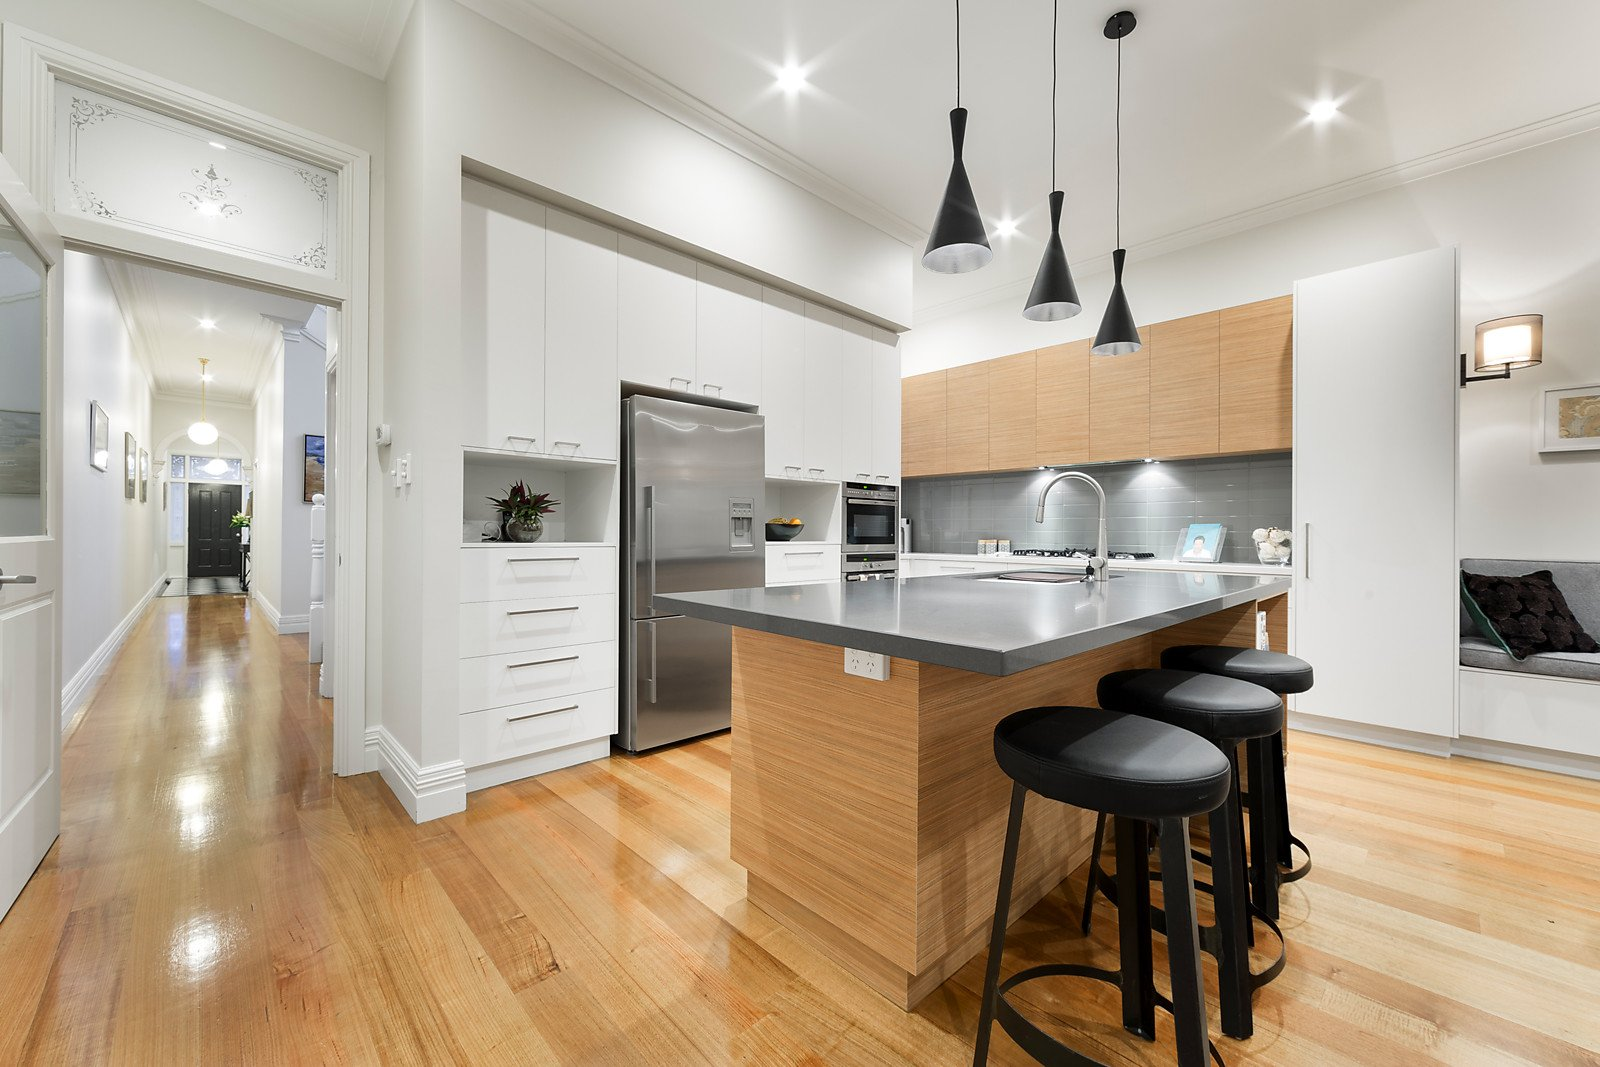 10 Canning Street, North Melbourne, VIC, 3051 image 4